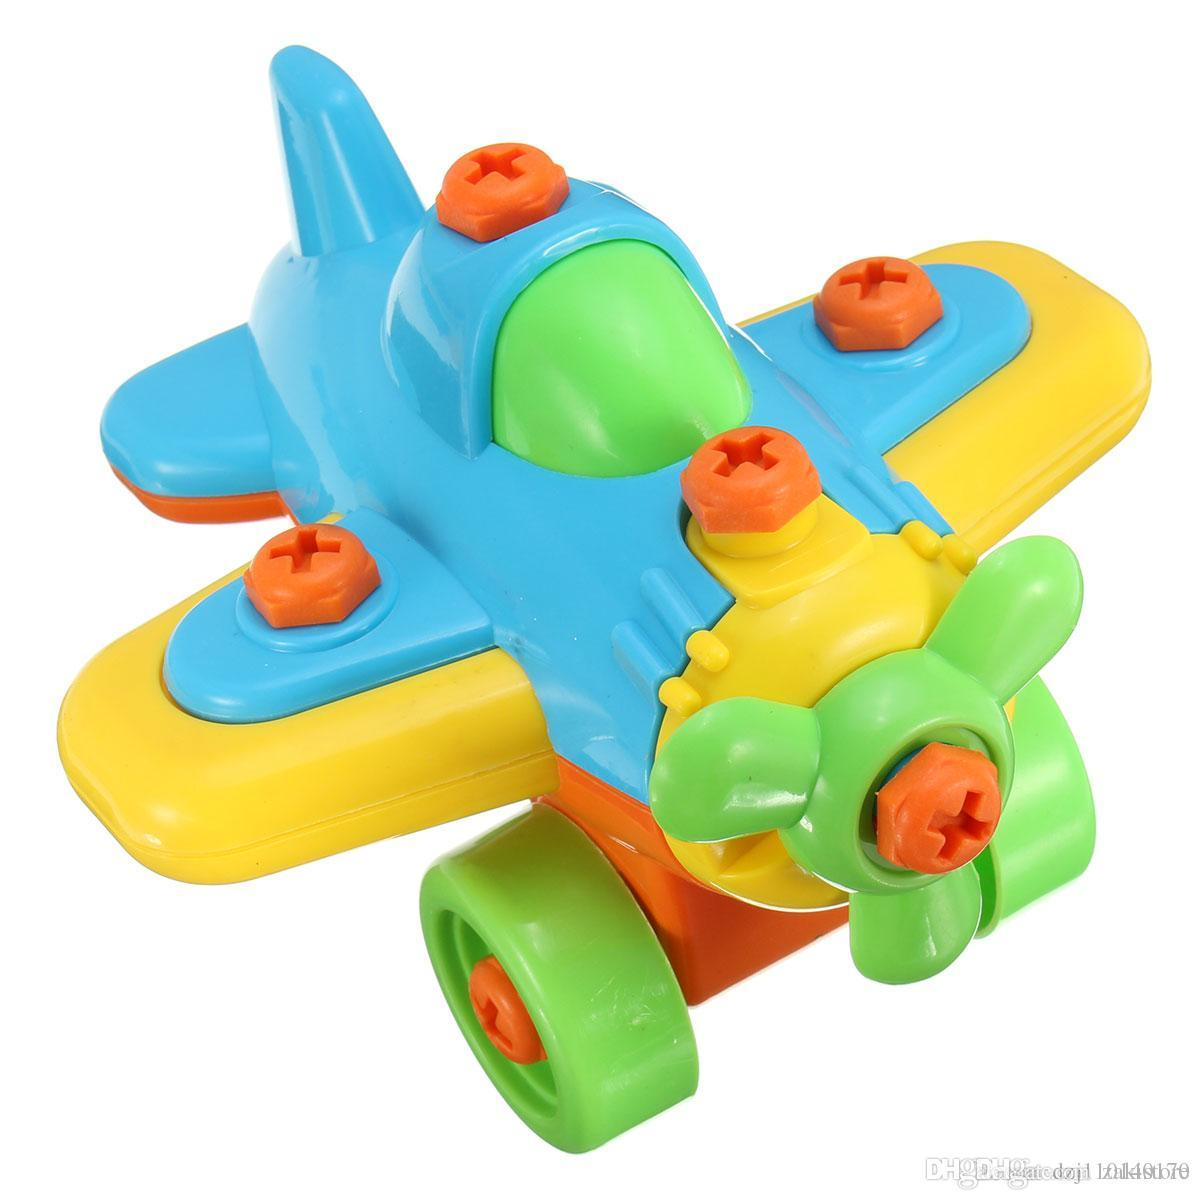 New DIY Disassembling Small Plane Building Blocks Children Assembled Model Tool clamp With Screwdriver Educational Toys